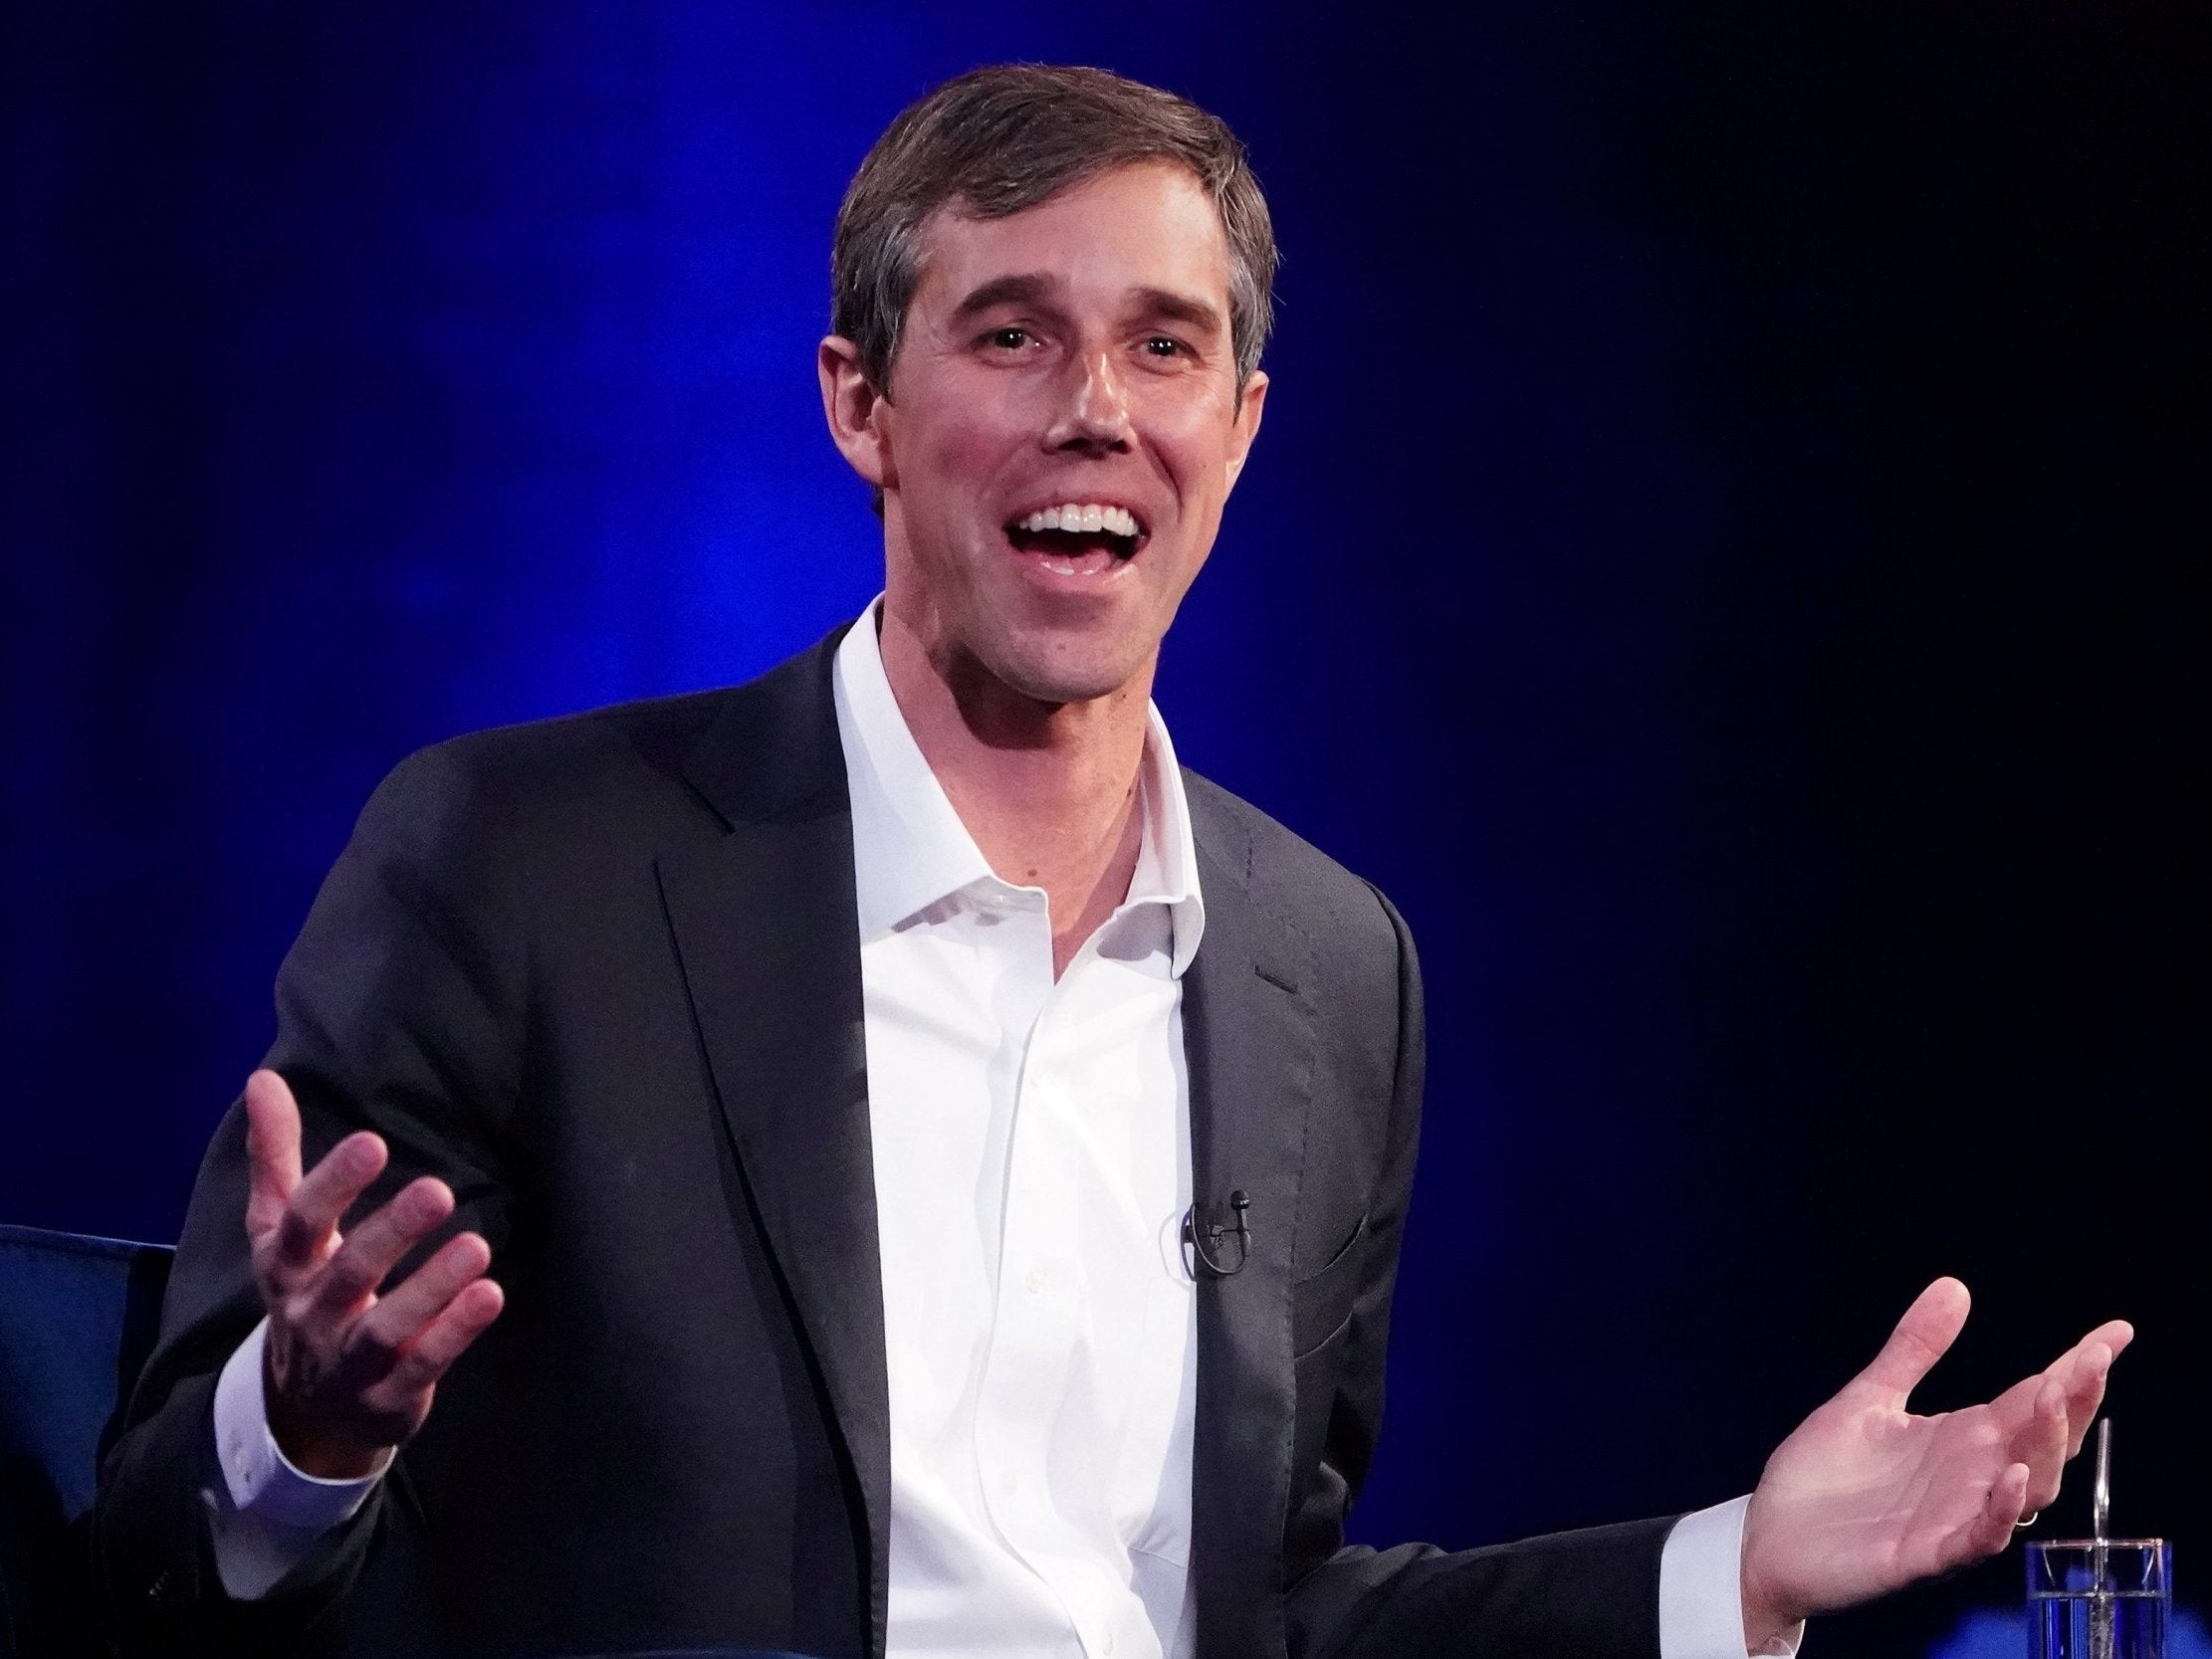 Beto O'Rourke: Democrat rising star to run for president against Trump in 2020 election